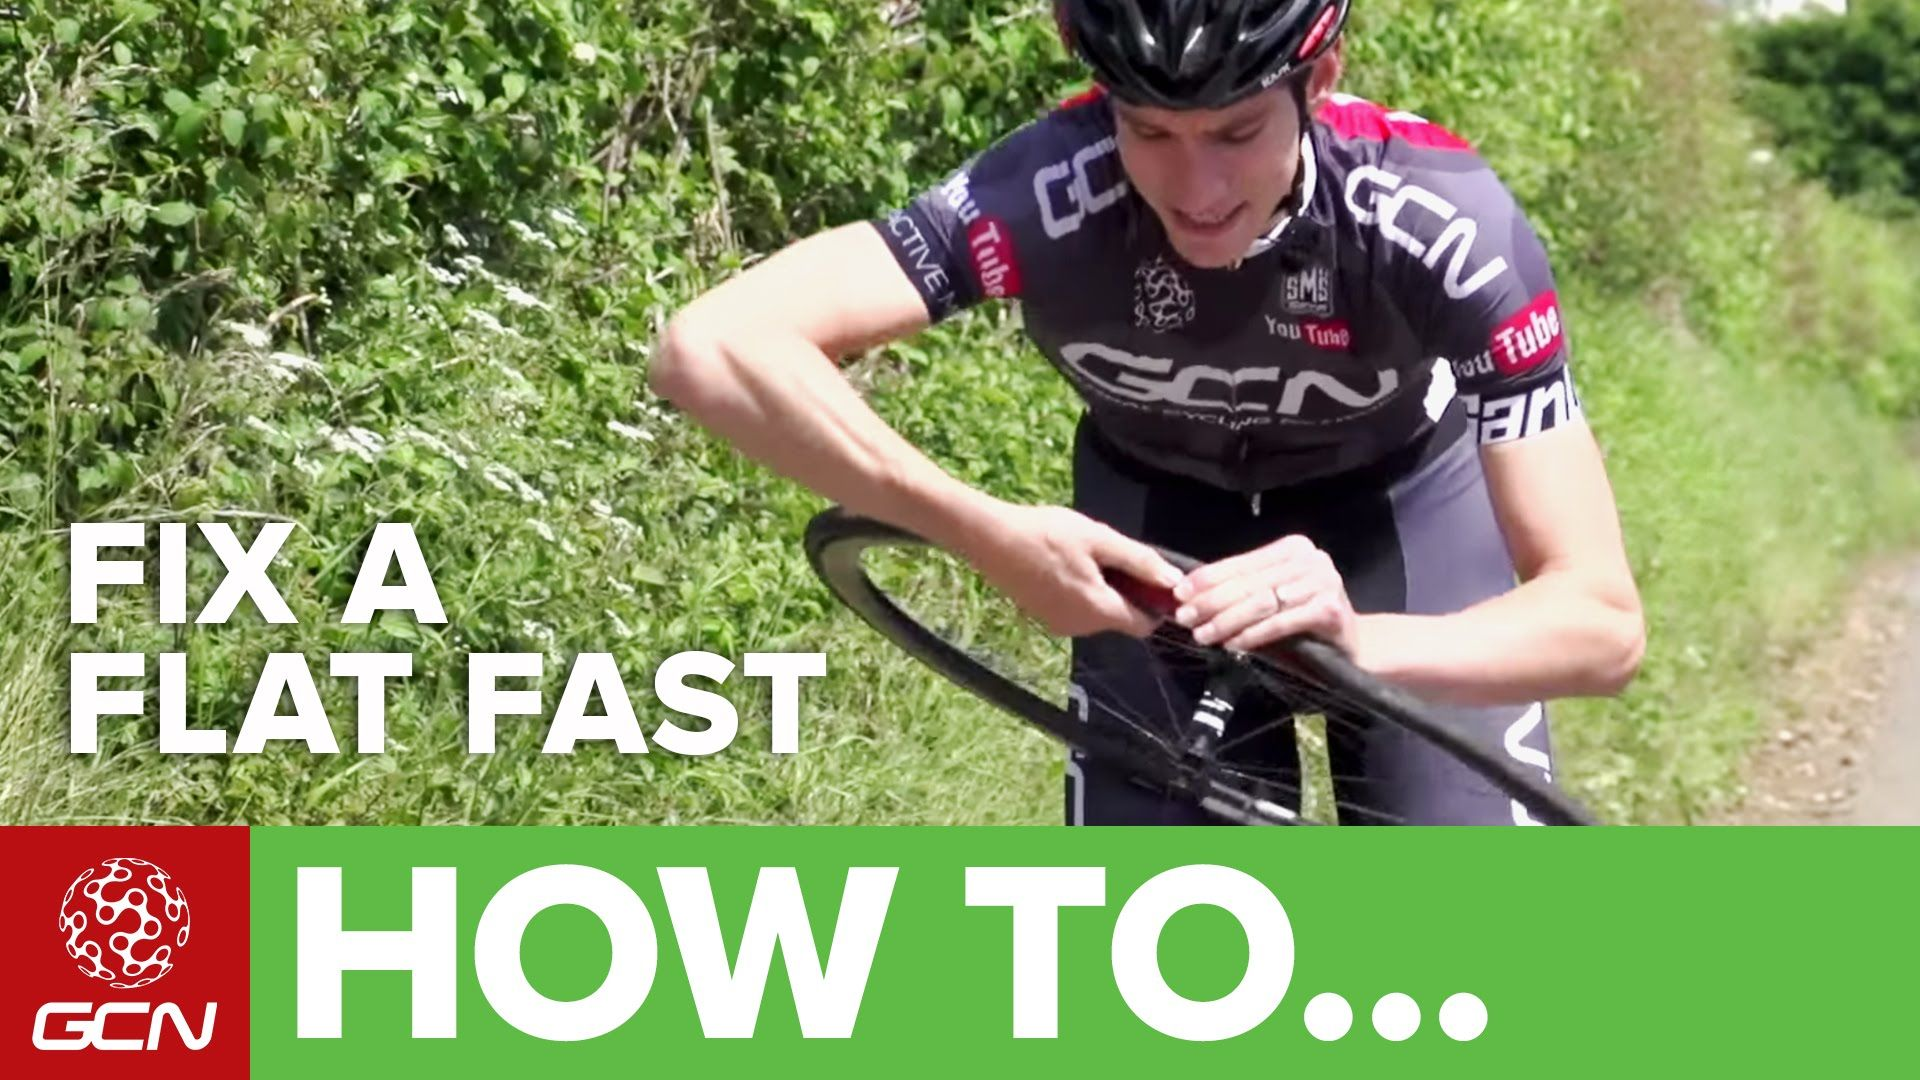 Fix A Flat Fast How To Change An Inner Tube In Record Time